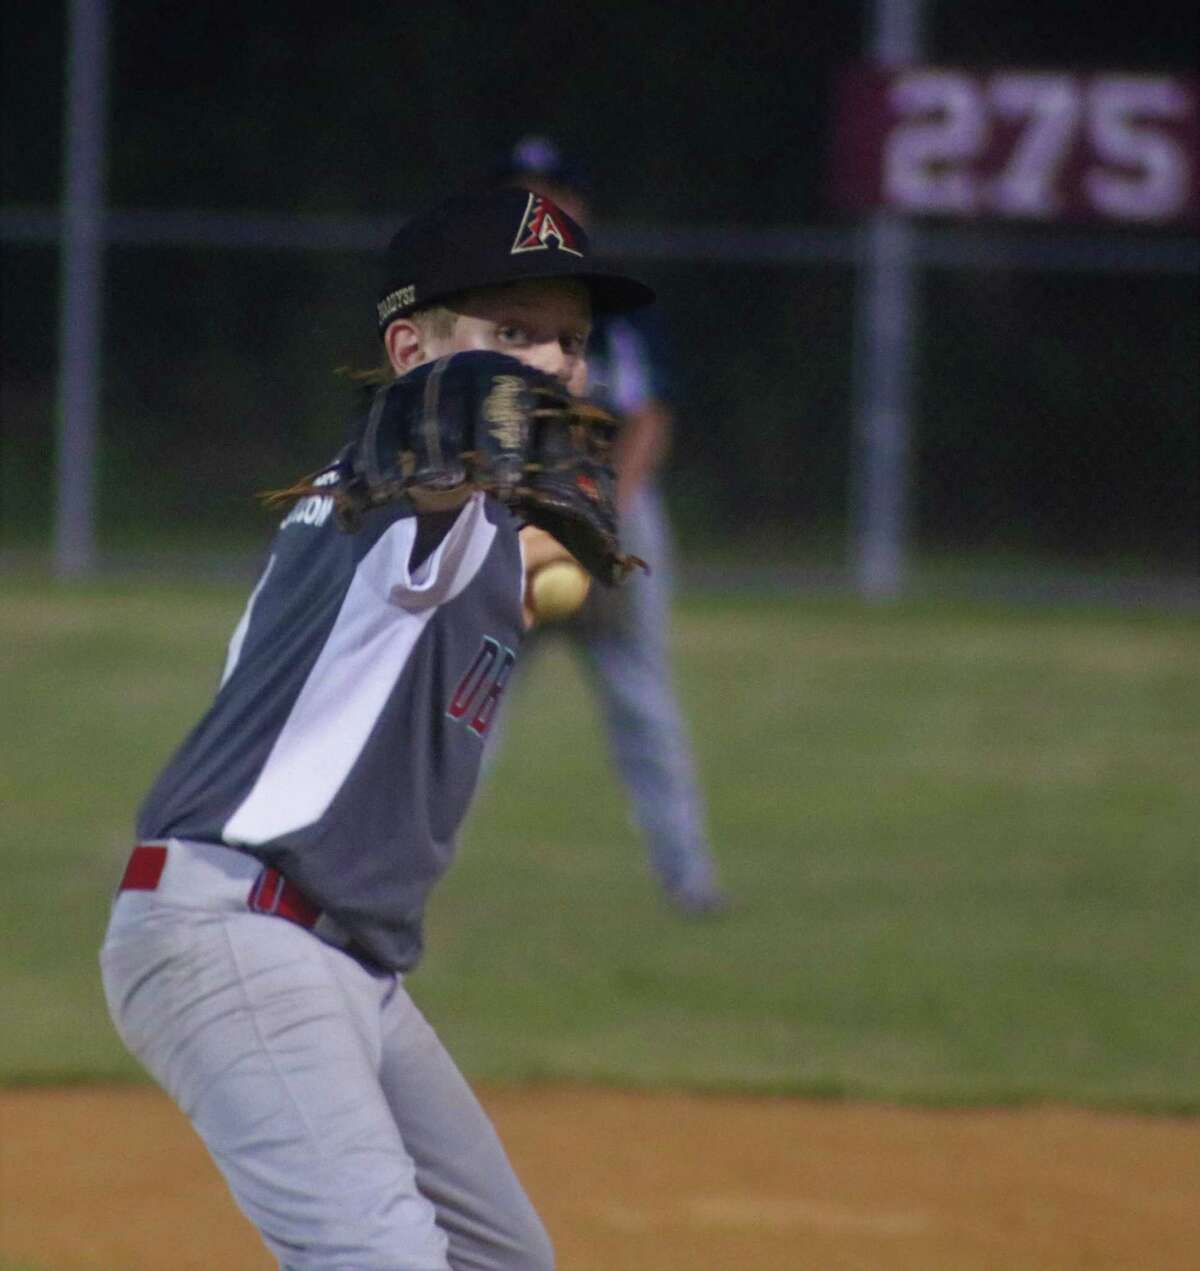 Jack Paradysz peers over his glove as he works on a batter Tuesday night. En route to picking two Pirates off first base, the southpaw nabbed the win on the mound.